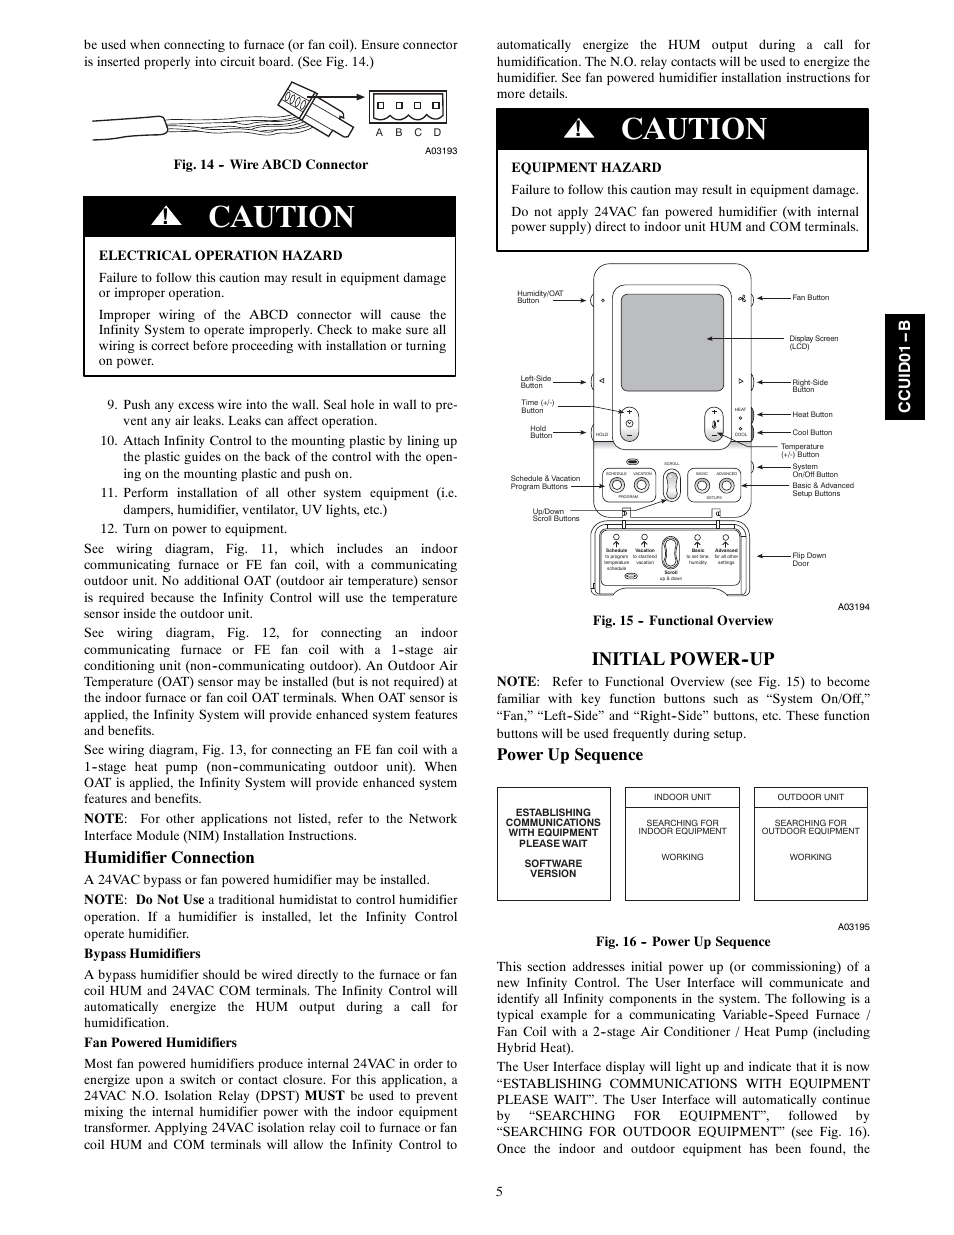 Caution Initial Power Up Humidifier Connection Carrier Infinity Coal Furnace Blower Wiring Diagram Systxccuid01 B User Manual Page 5 16